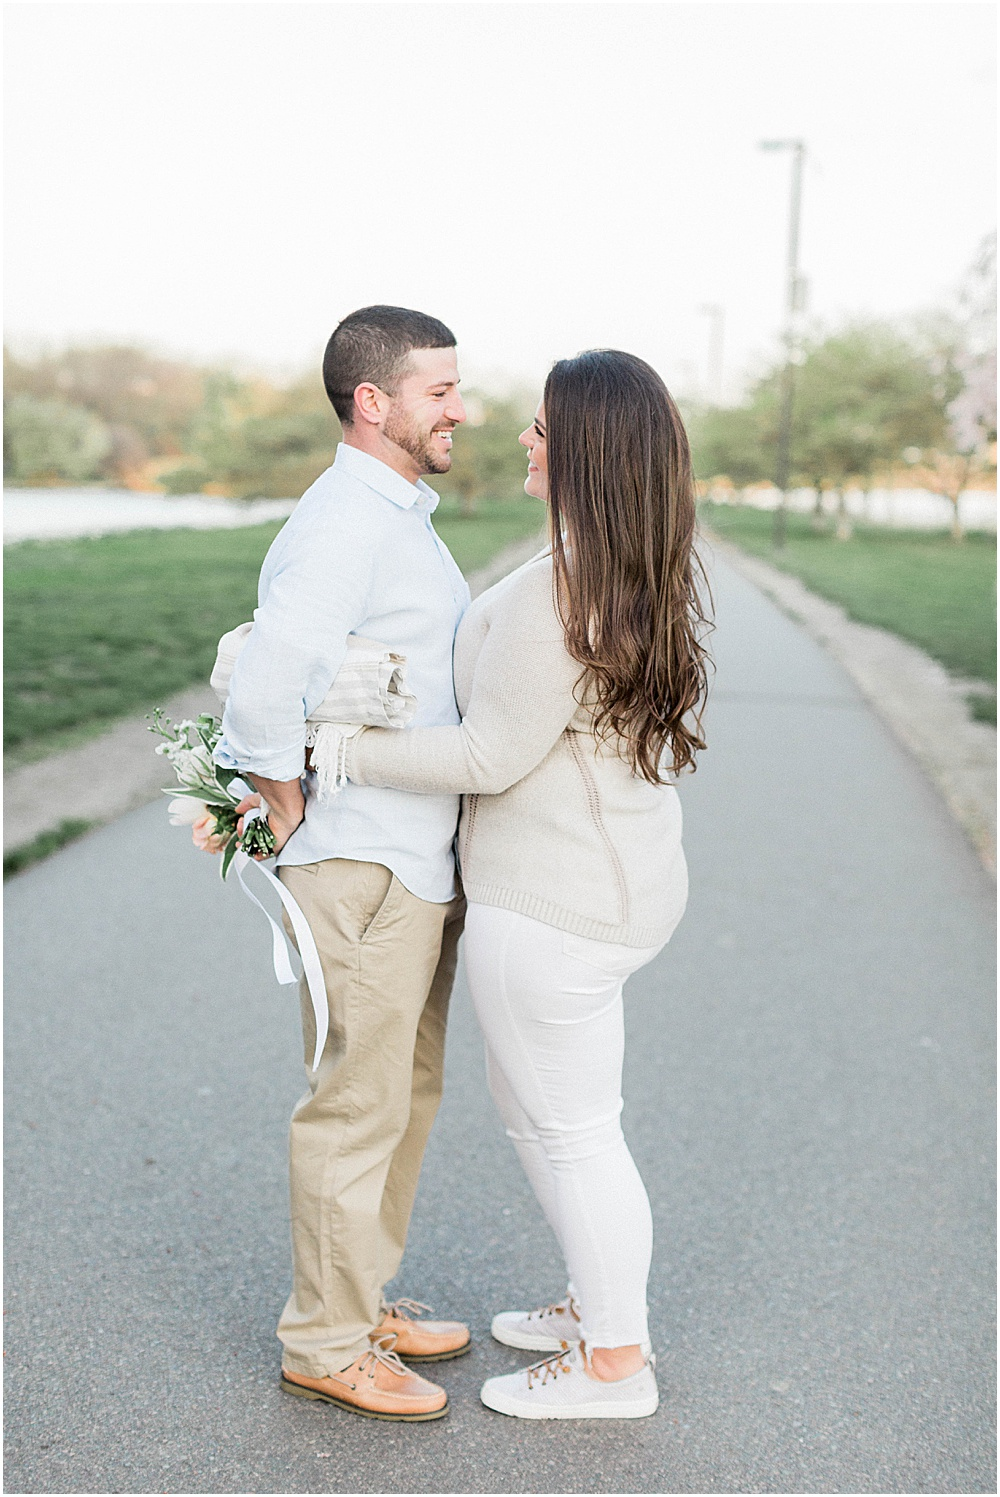 boston_charles_river_esplanaude_back_bay_cherry_blossoms_spring_engagement_session_boston_charles_river_wedding_photographer_meredith_jane_photography_photo_0204.jpg